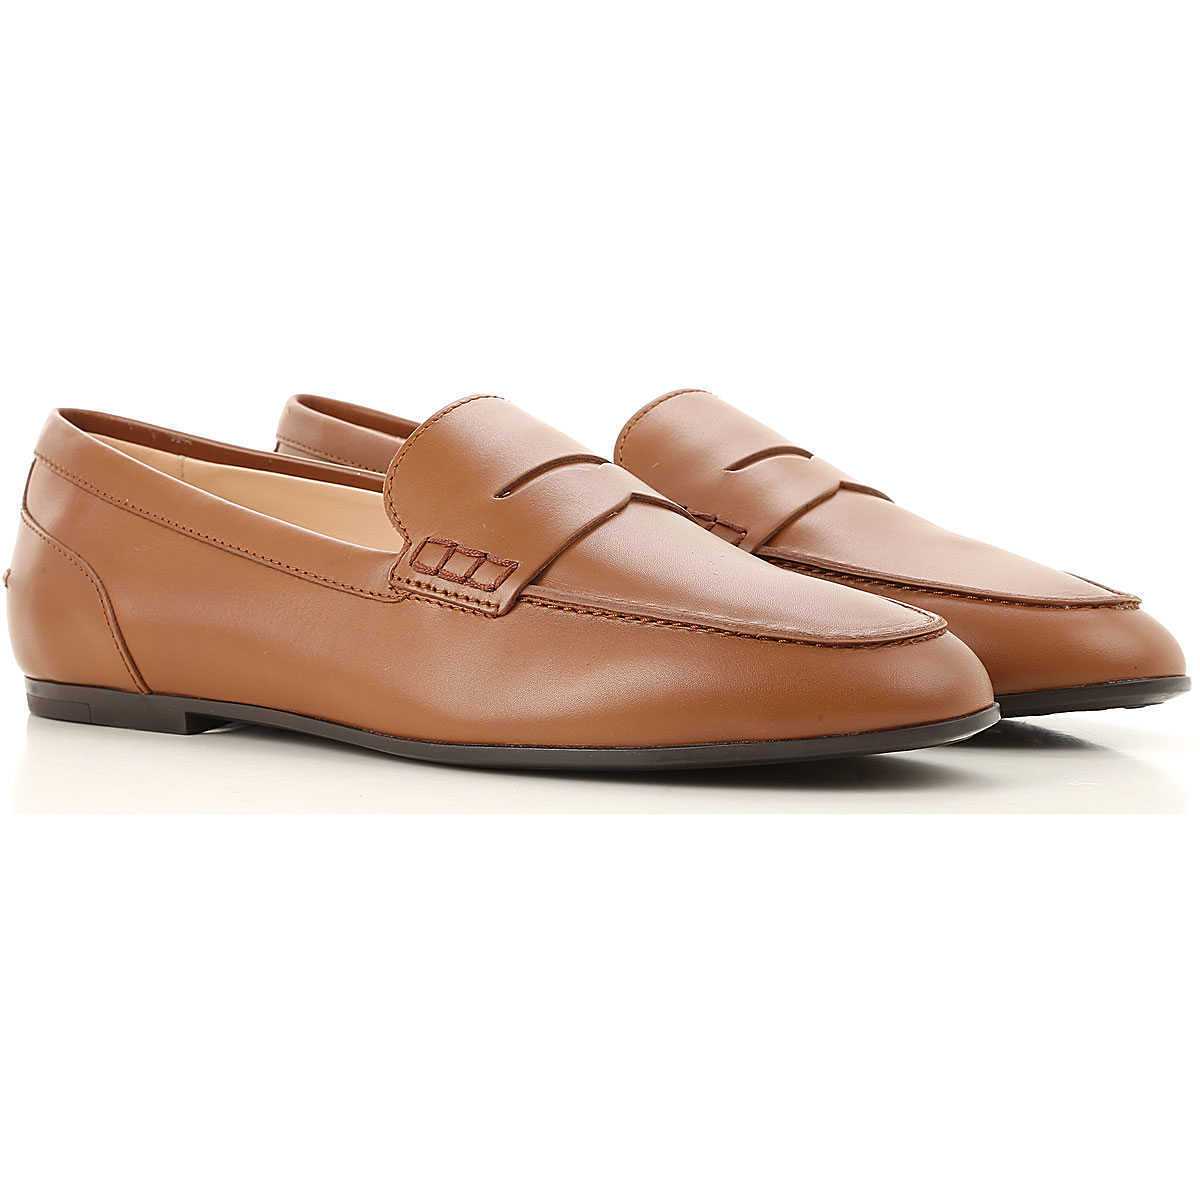 Tods Loafers for Women Brandy - GOOFASH